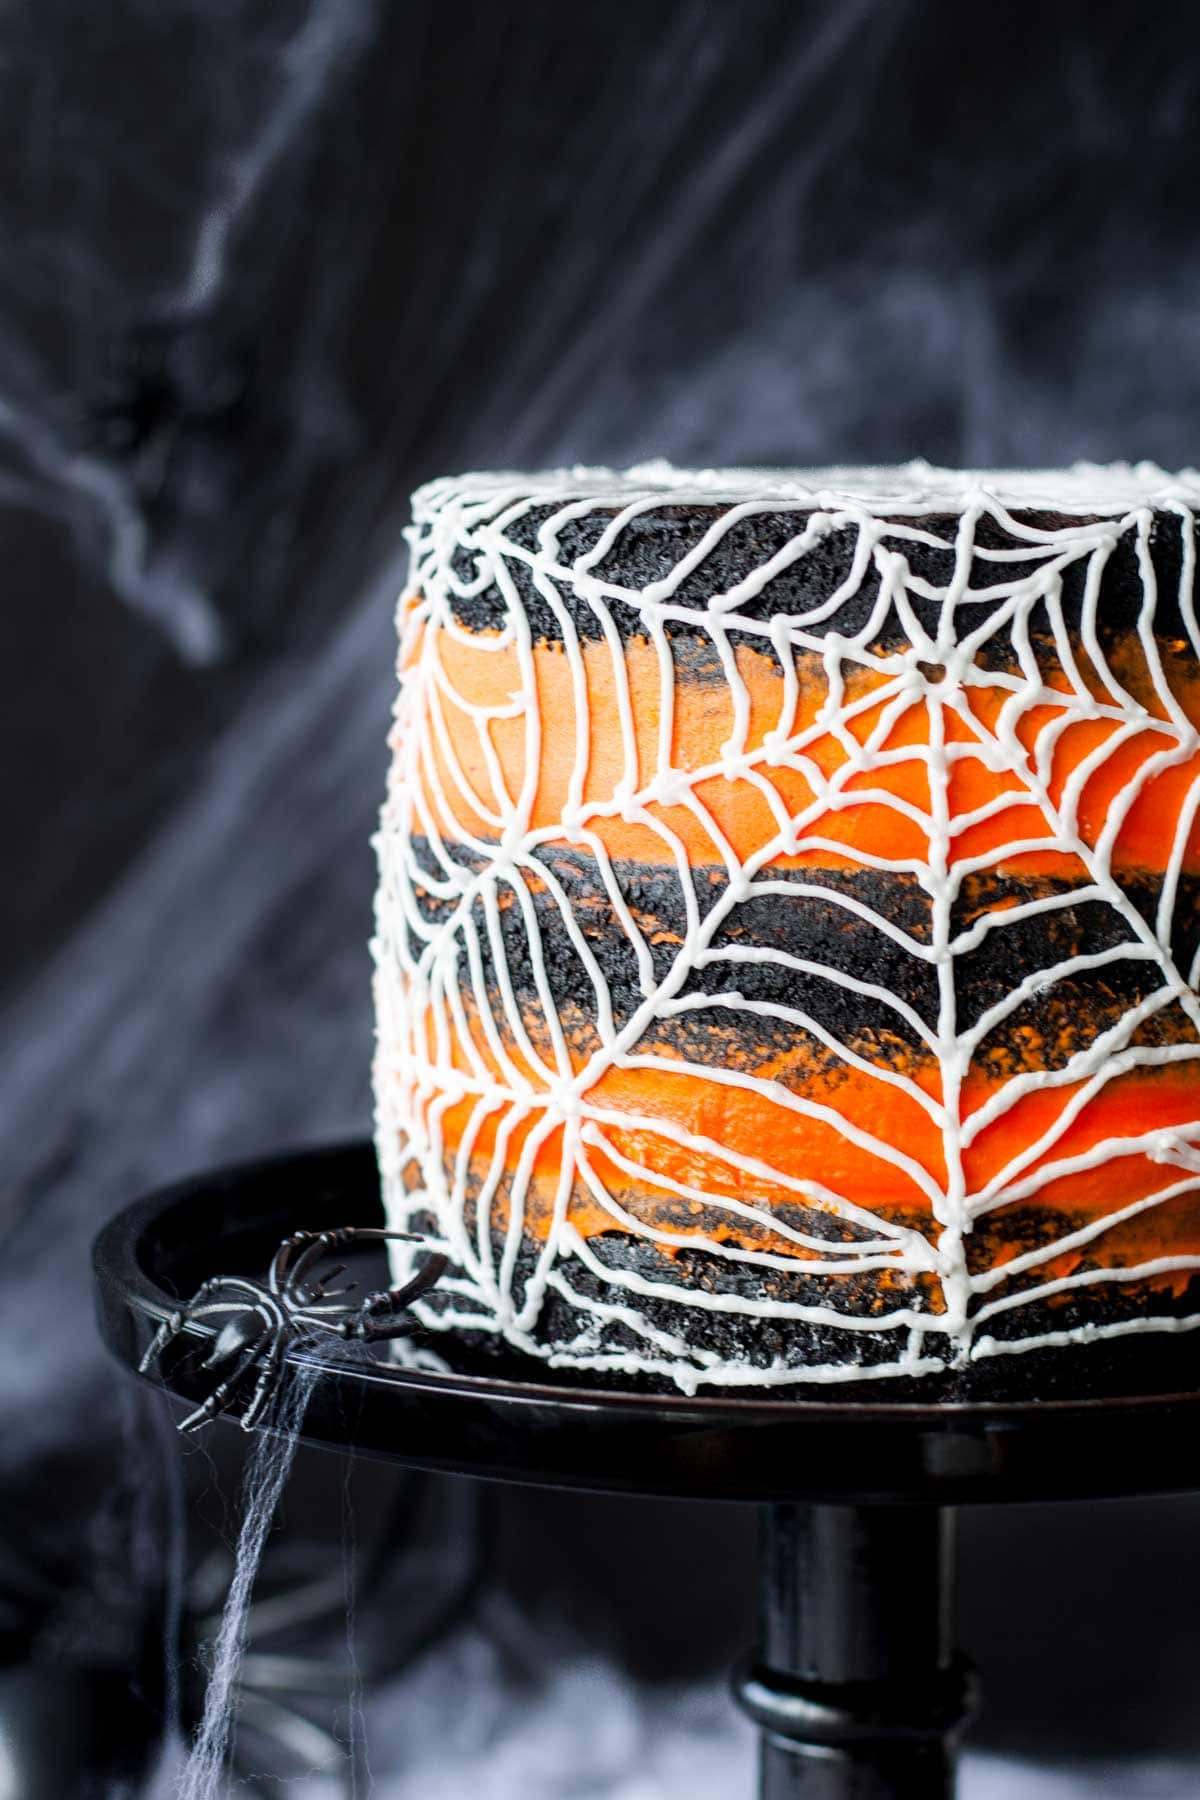 Close up of the spiderweb on the side of the cake.